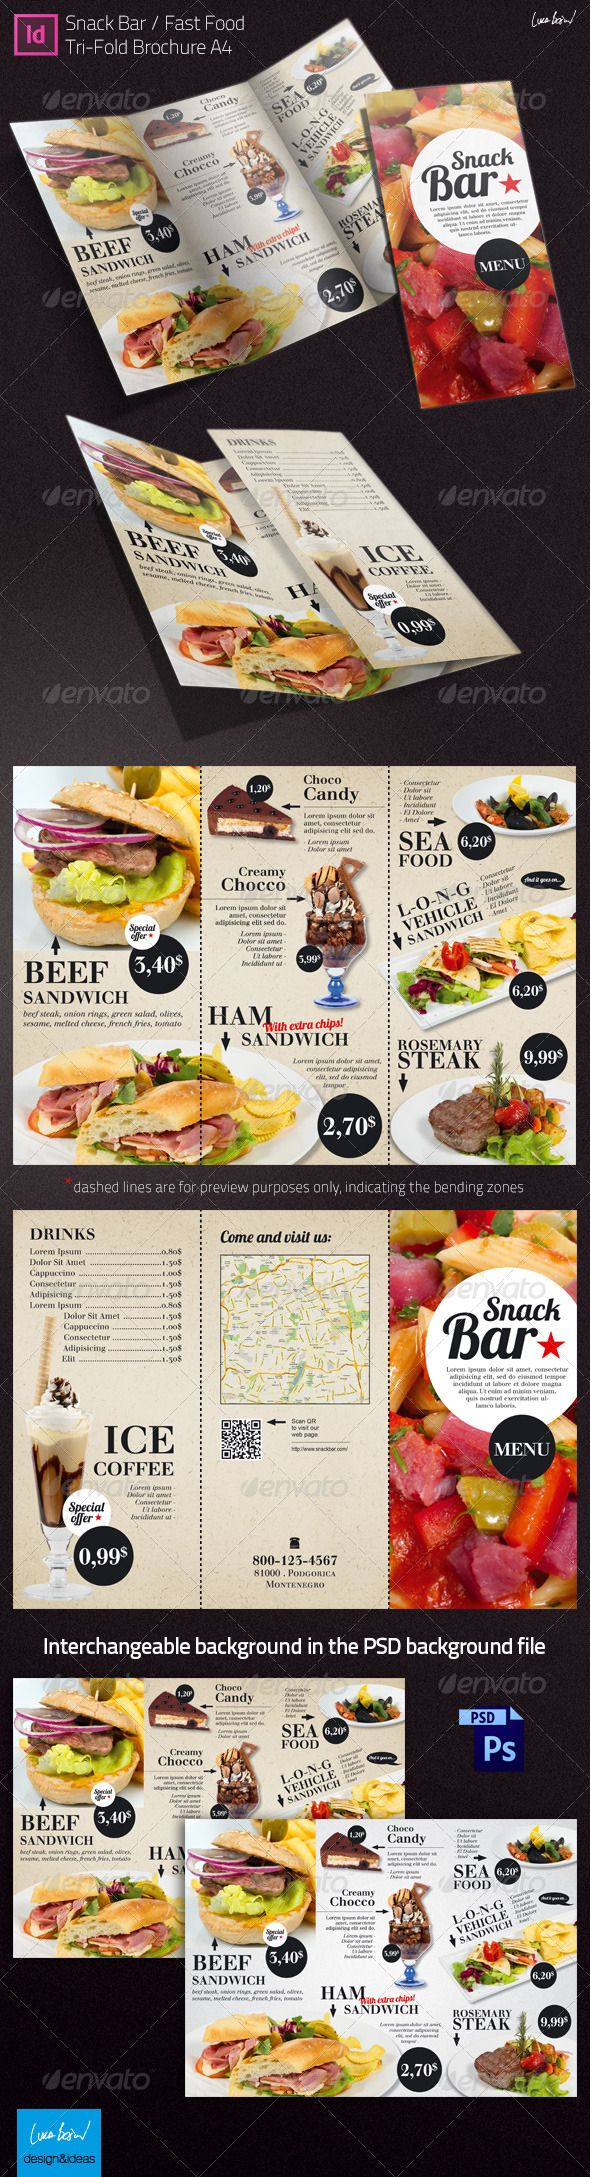 TriFold Brochure Snack Bar Menu  Restaurant Texts And The Shape